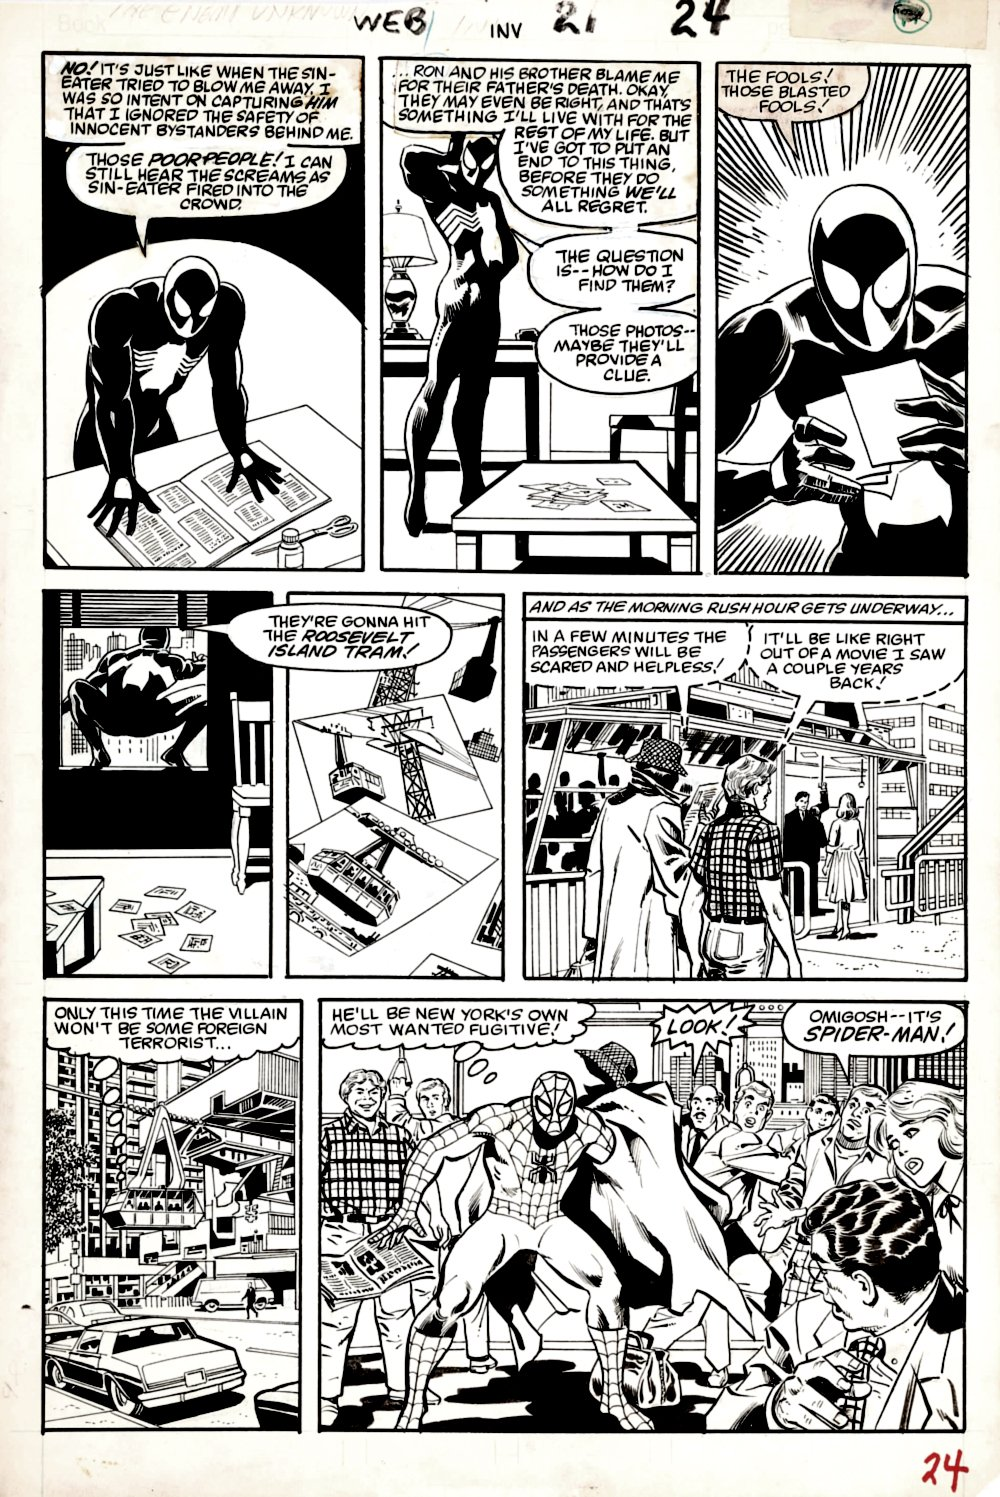 Web of Spider-Man #21 p 24 (Rare Page With Black Costume Spider-Man & Original Costume Spider-Man!) 1986